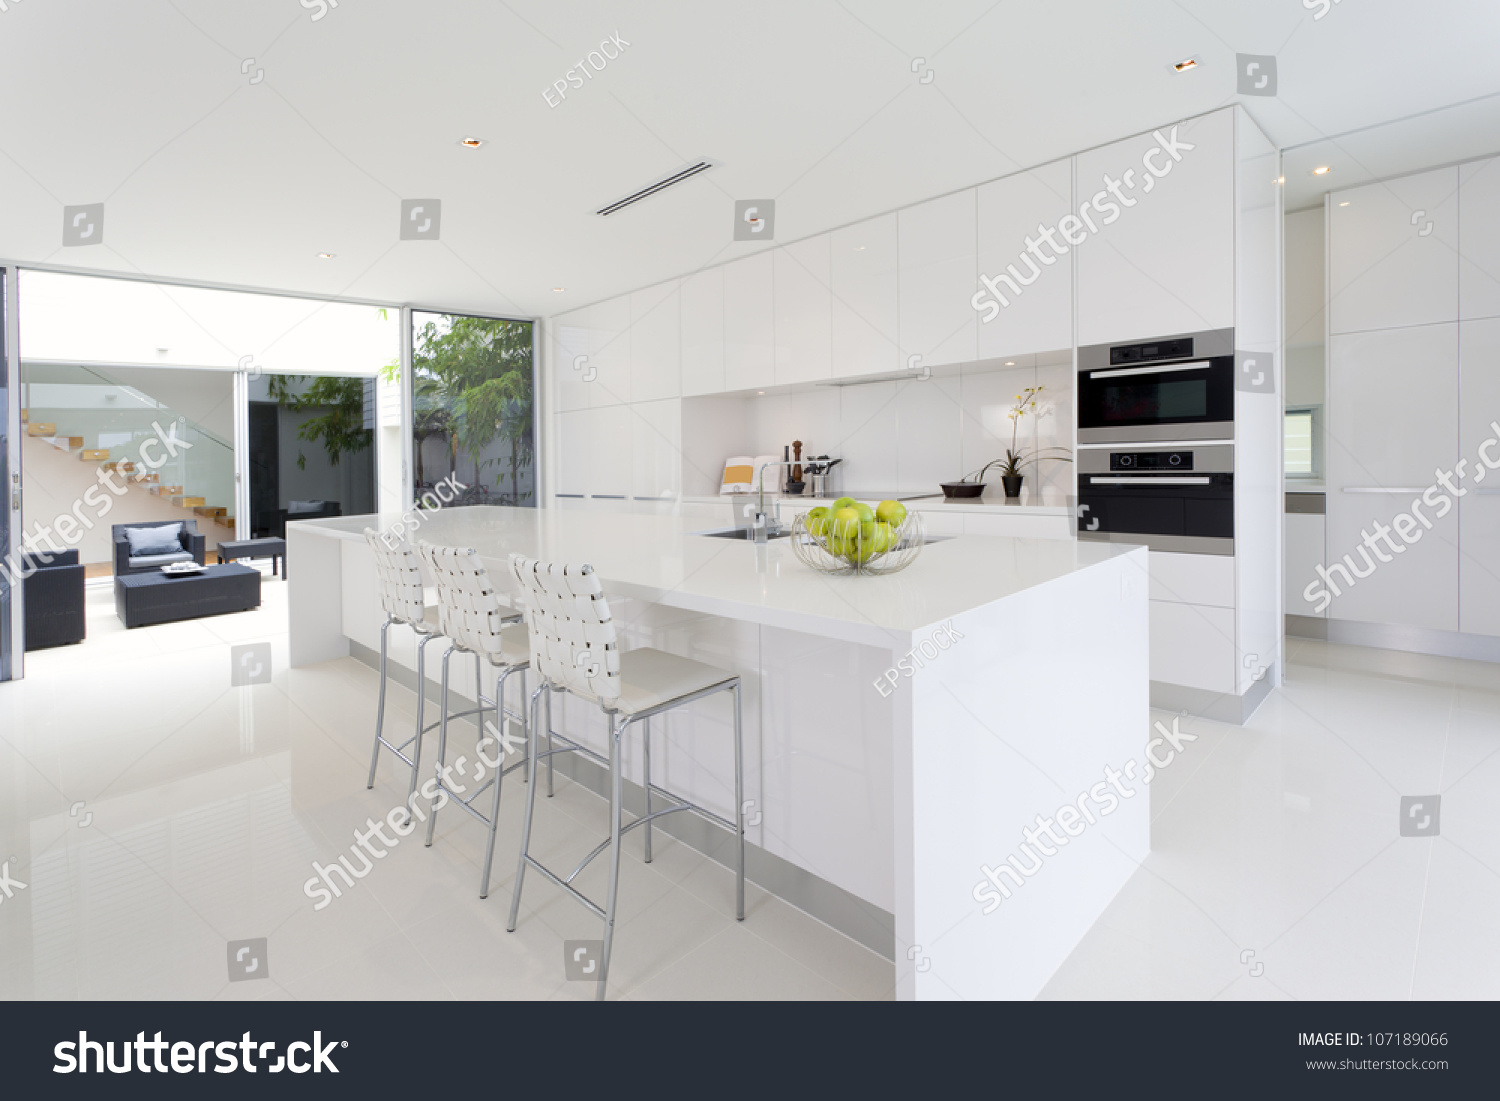 Luxurious Kitchen With Stainless Steel Appliances In